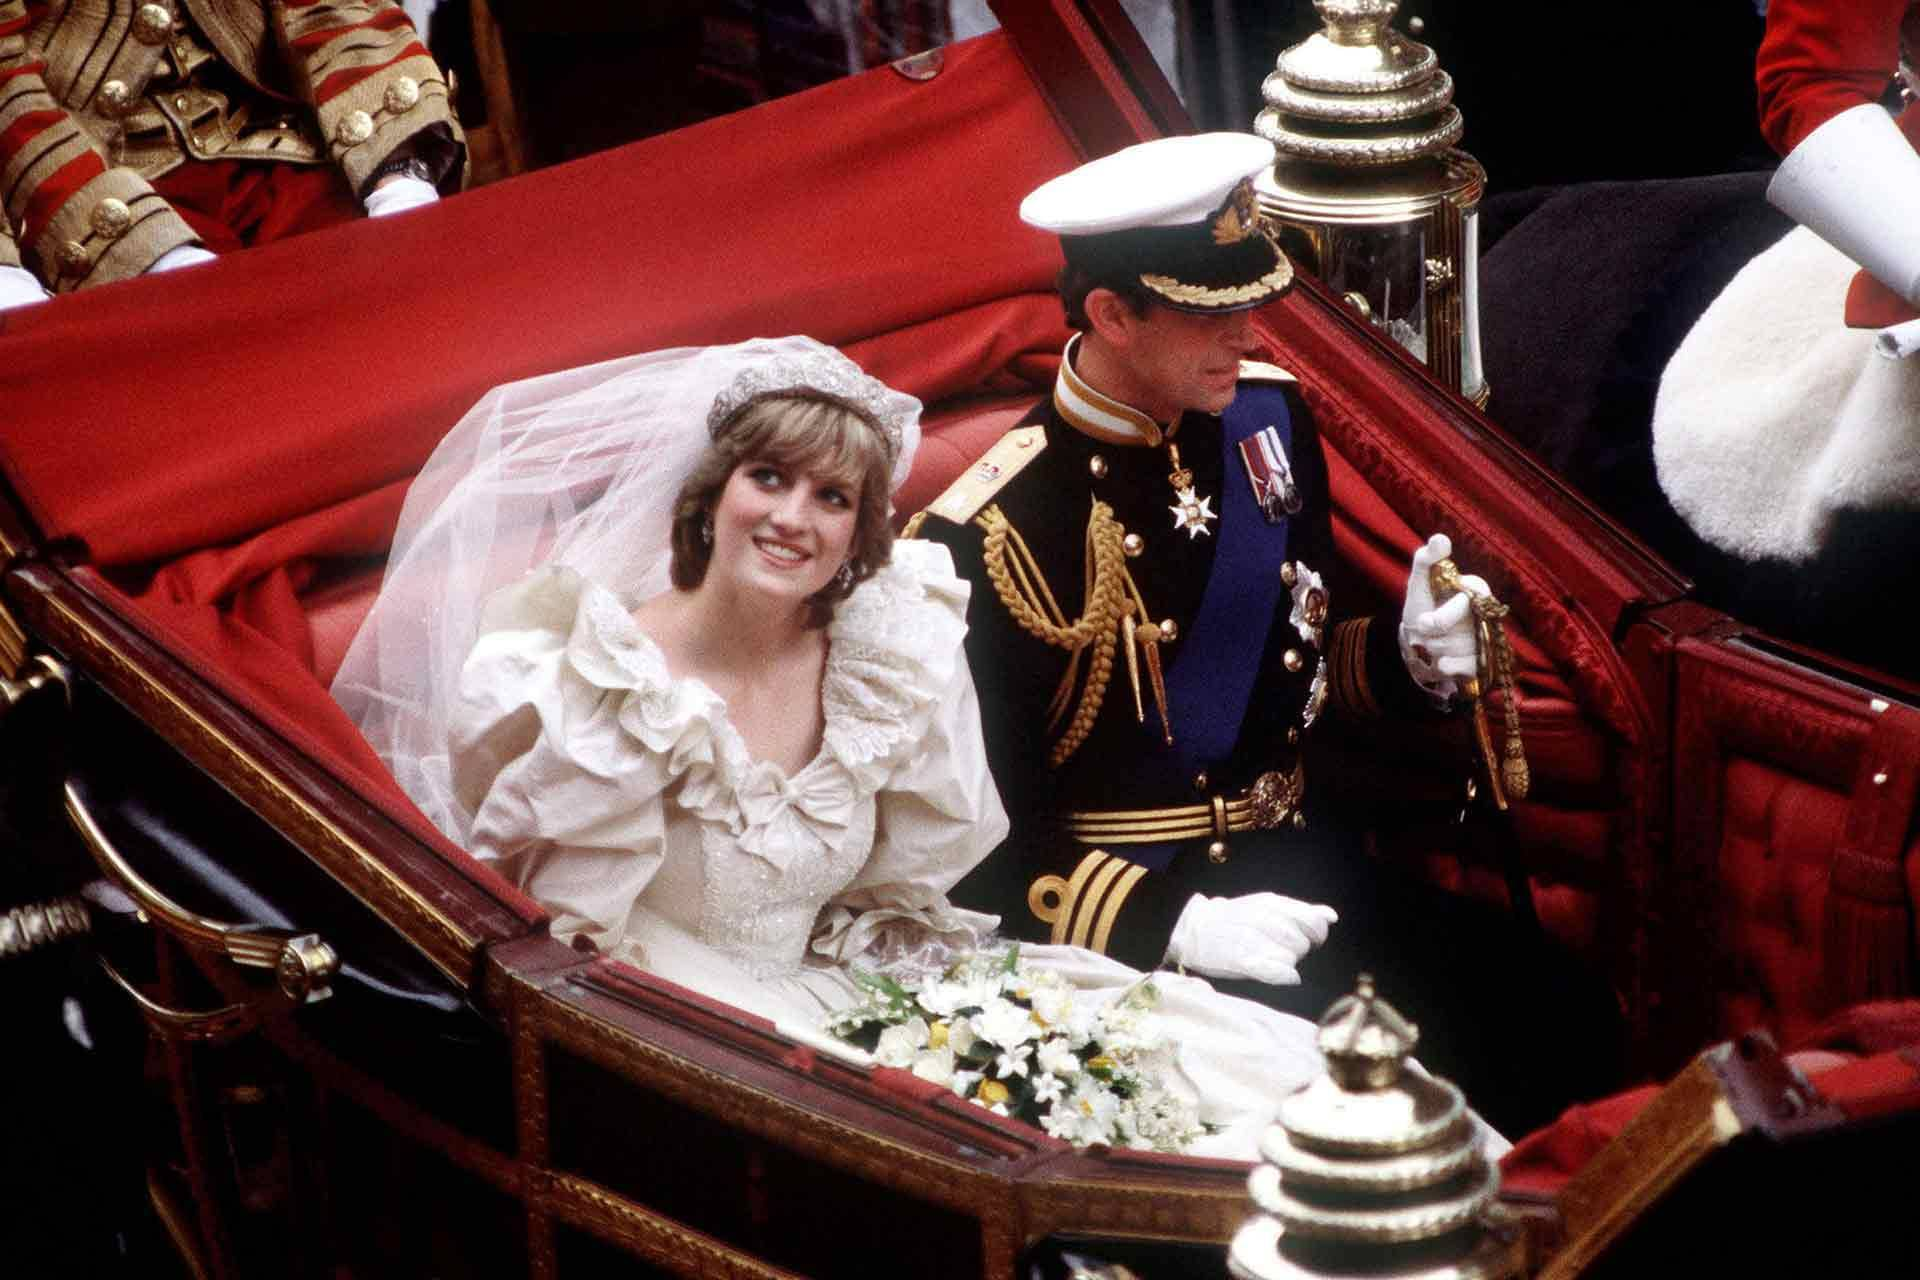 Fot. Princess Diana Archive/Getty Images